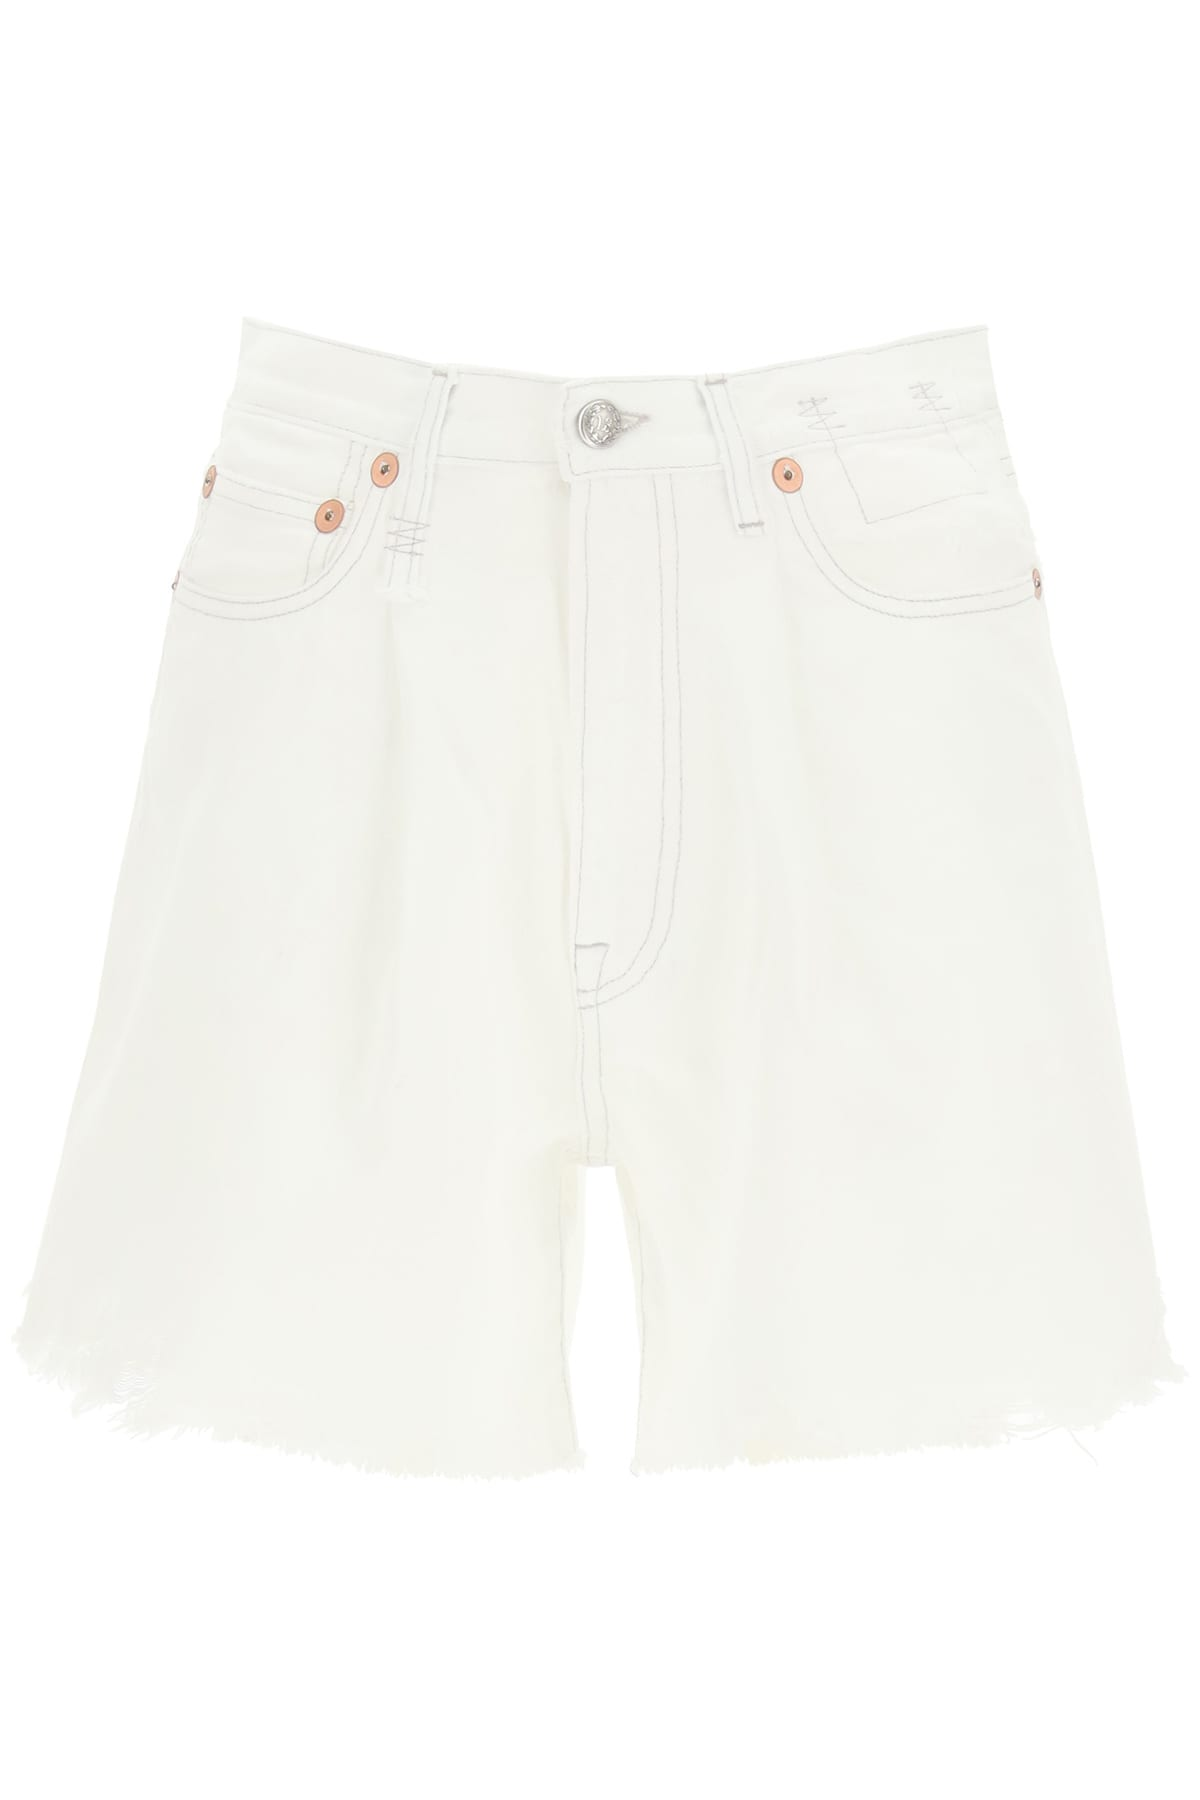 R13 Clothing DAMON SHORTS WITH PLEATS